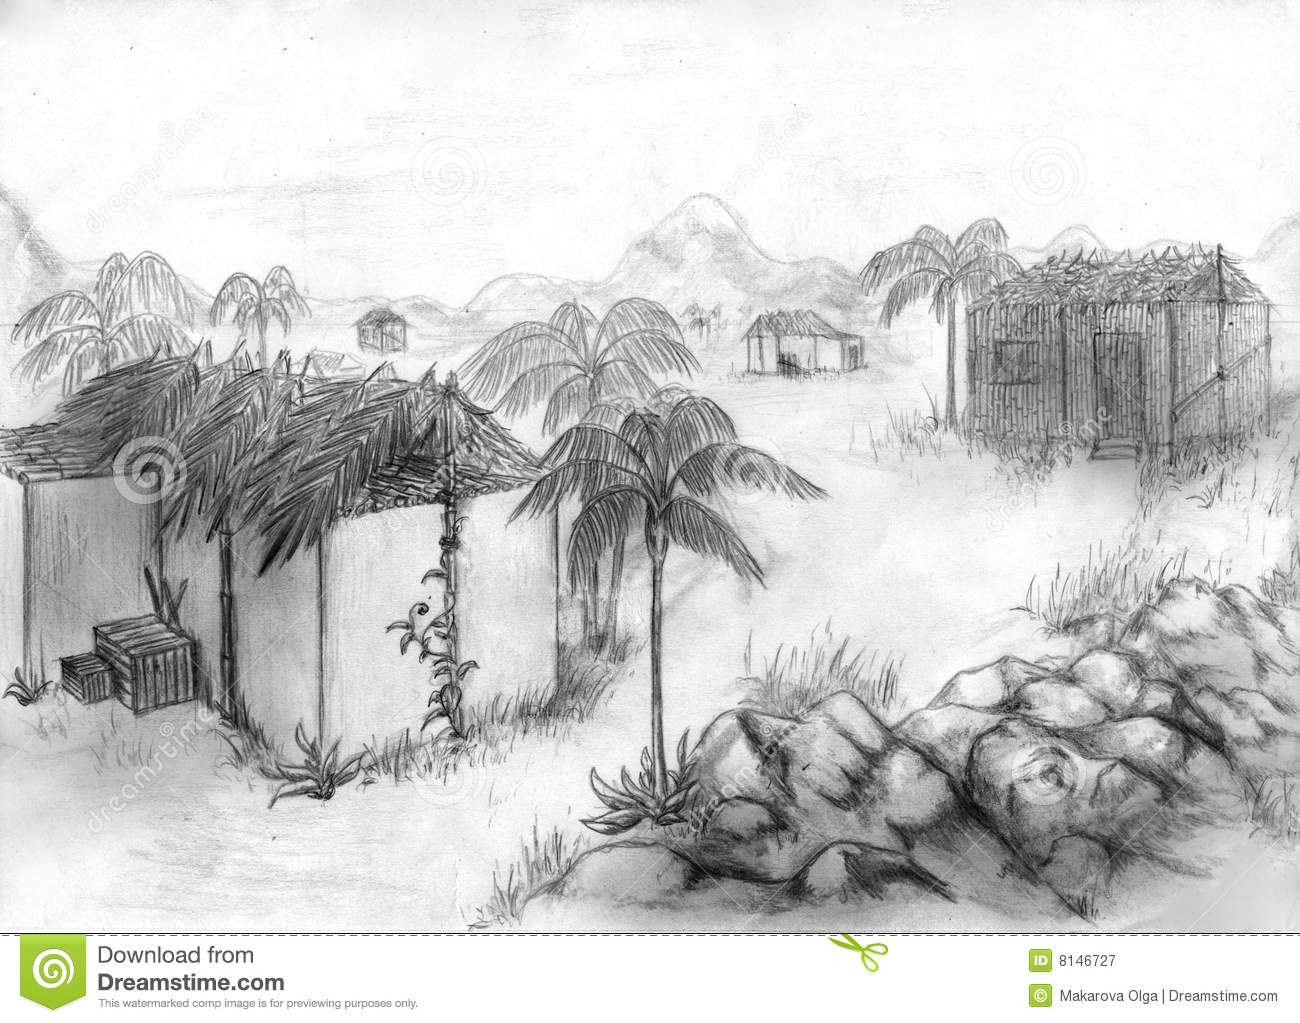 Misc Field Sketches besides Royalty Free Stock Photography Tropical Village Sketch Image8146727 further Henna Doodle moreover 2708339610 further Wave Storm 326908571. on beach scenery sketch